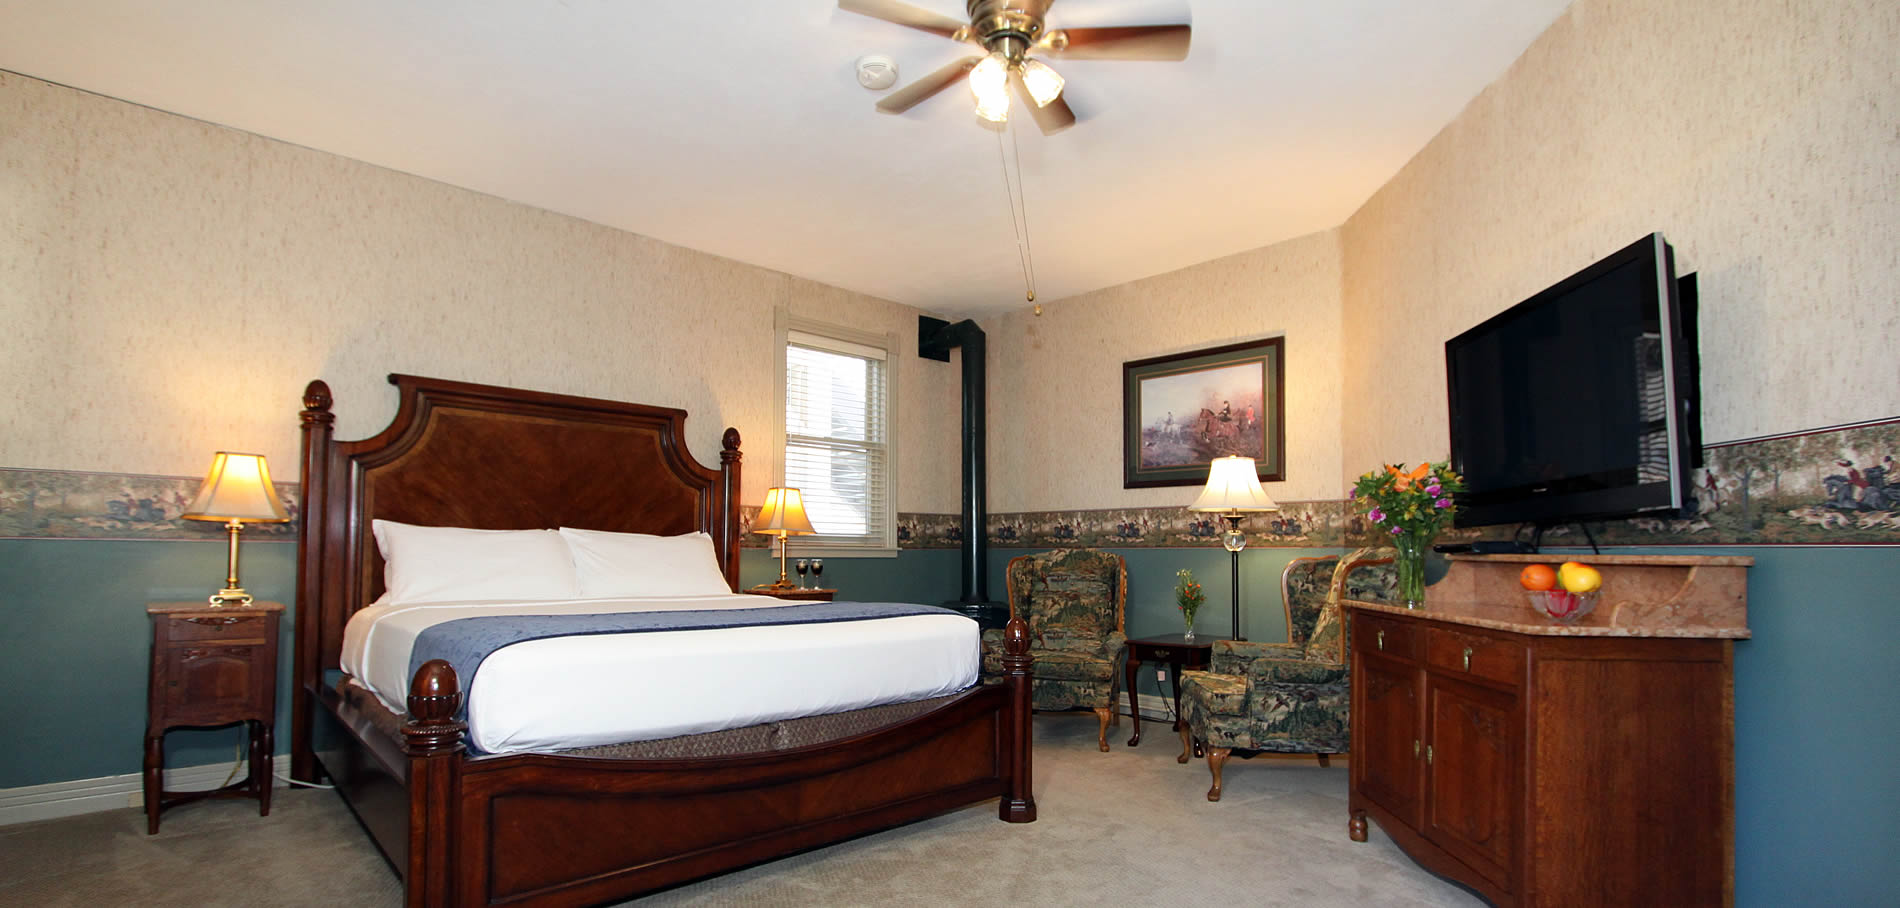 pheasant dreams room with bed, chairs and firestove